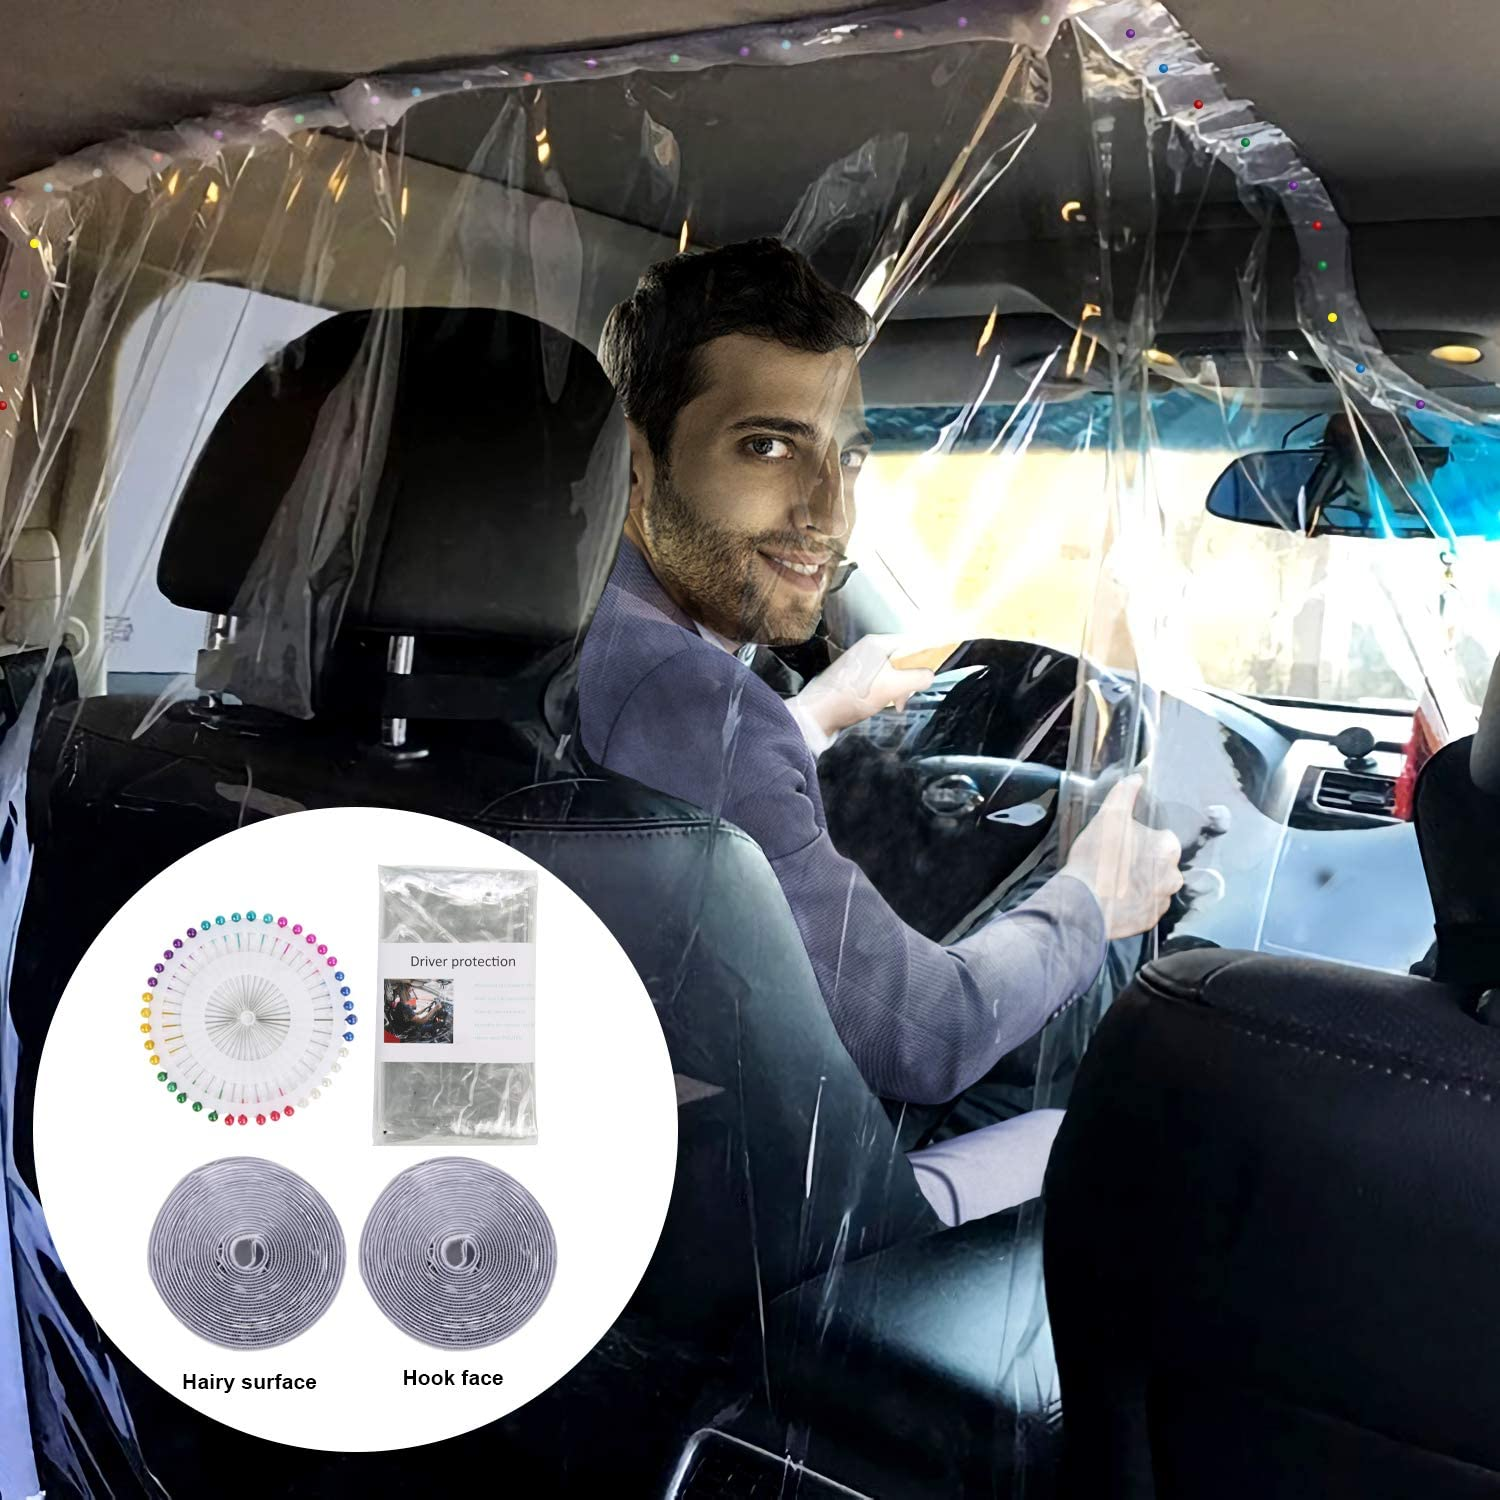 Plastic Anti-Droplet Full Surround Protective Cover Car Interior Partition Protective Film for Going Out JNUYISW Car Taxi Isolation Transparent Film